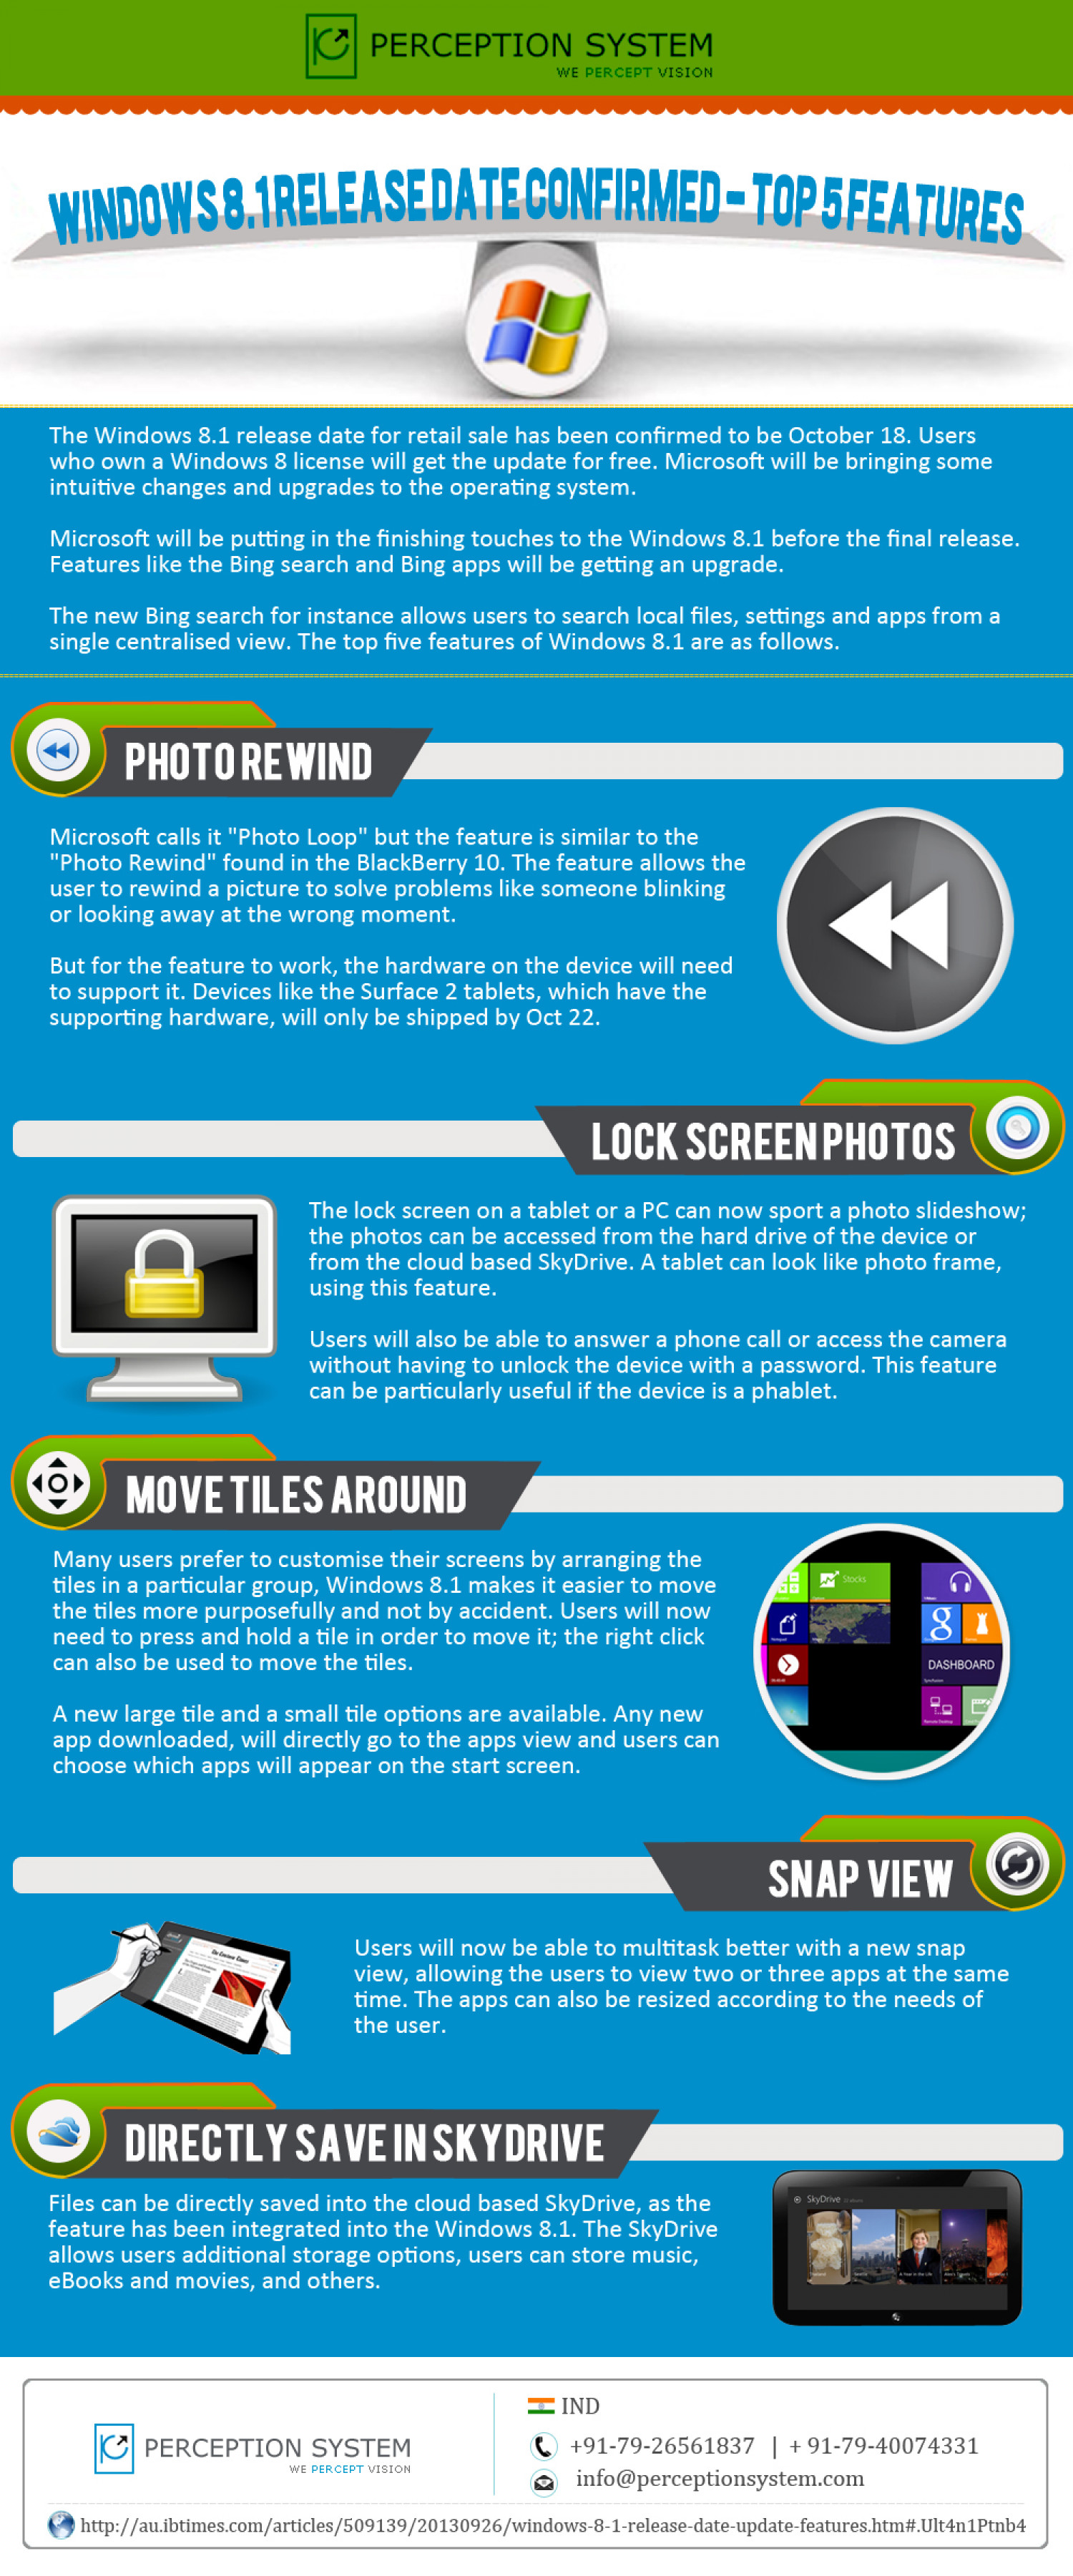 5 Upcoming Features of Windows Phone 8.1 Infographic